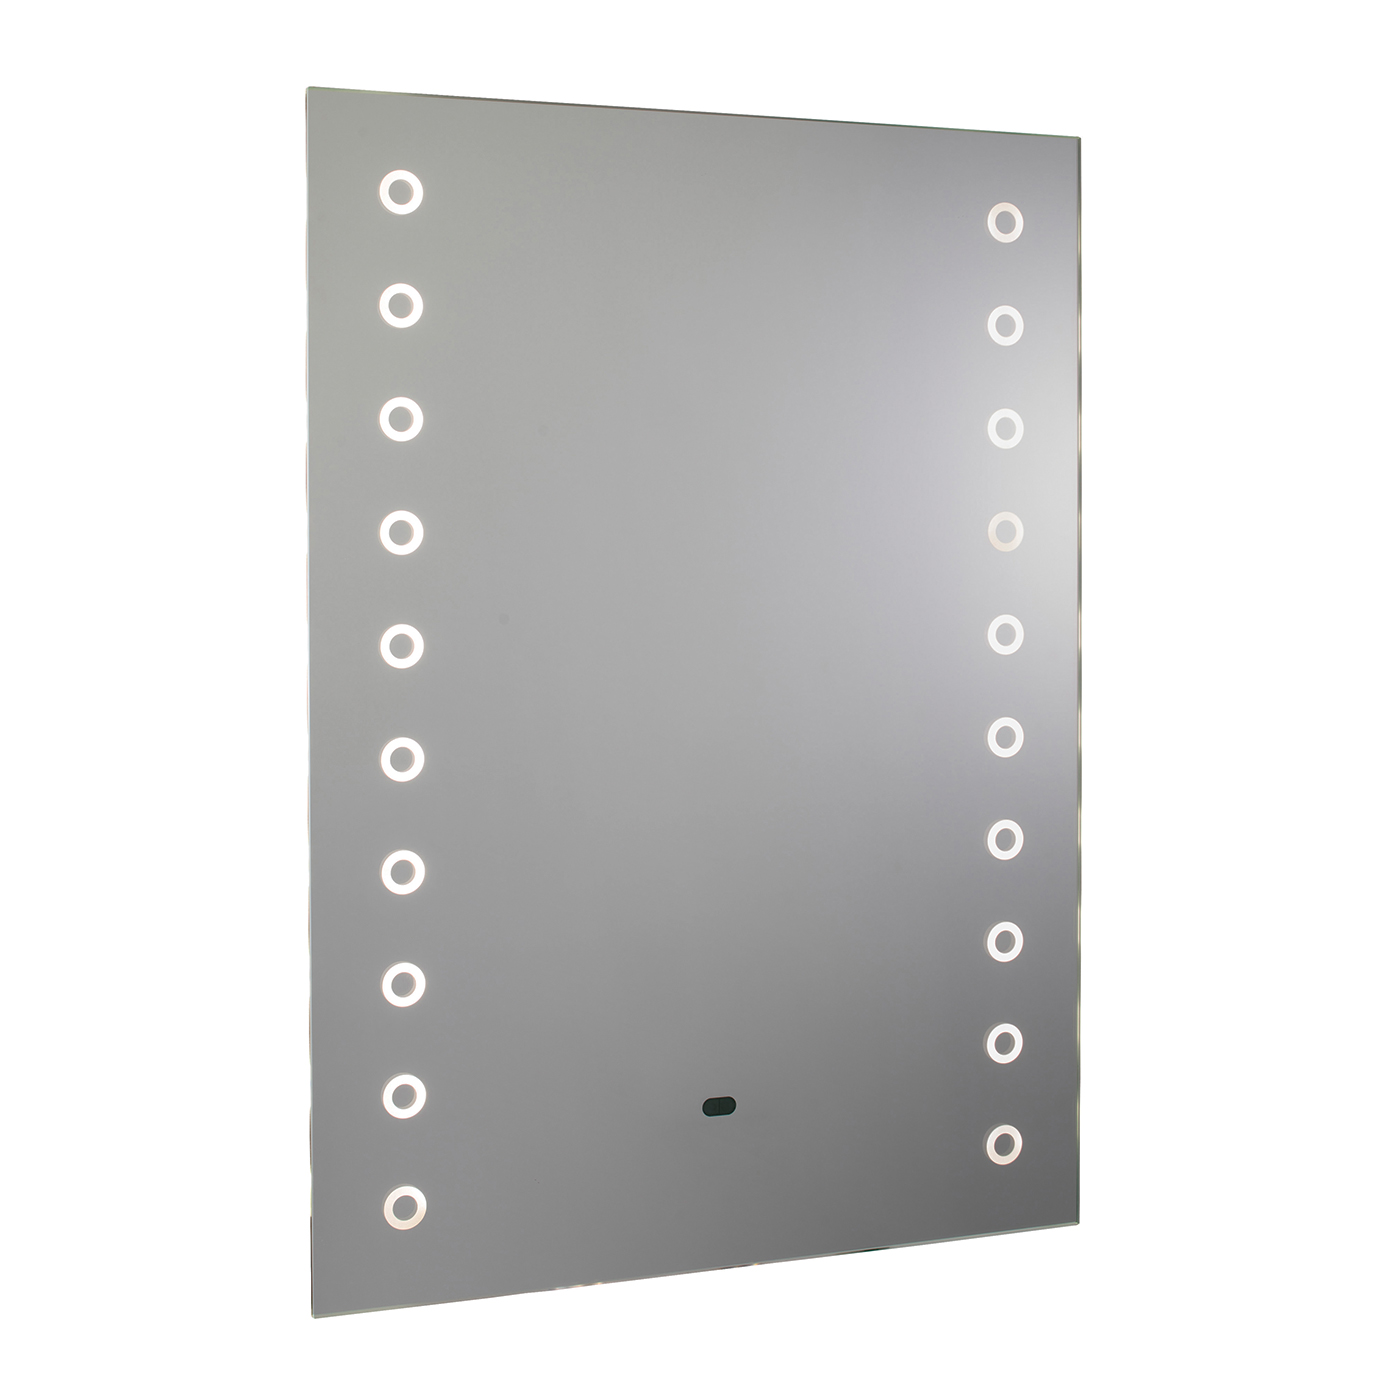 Endon Merle LED bathroom mirror IP44 10W sensor H: 700mm W: 500mm Thumbnail 1